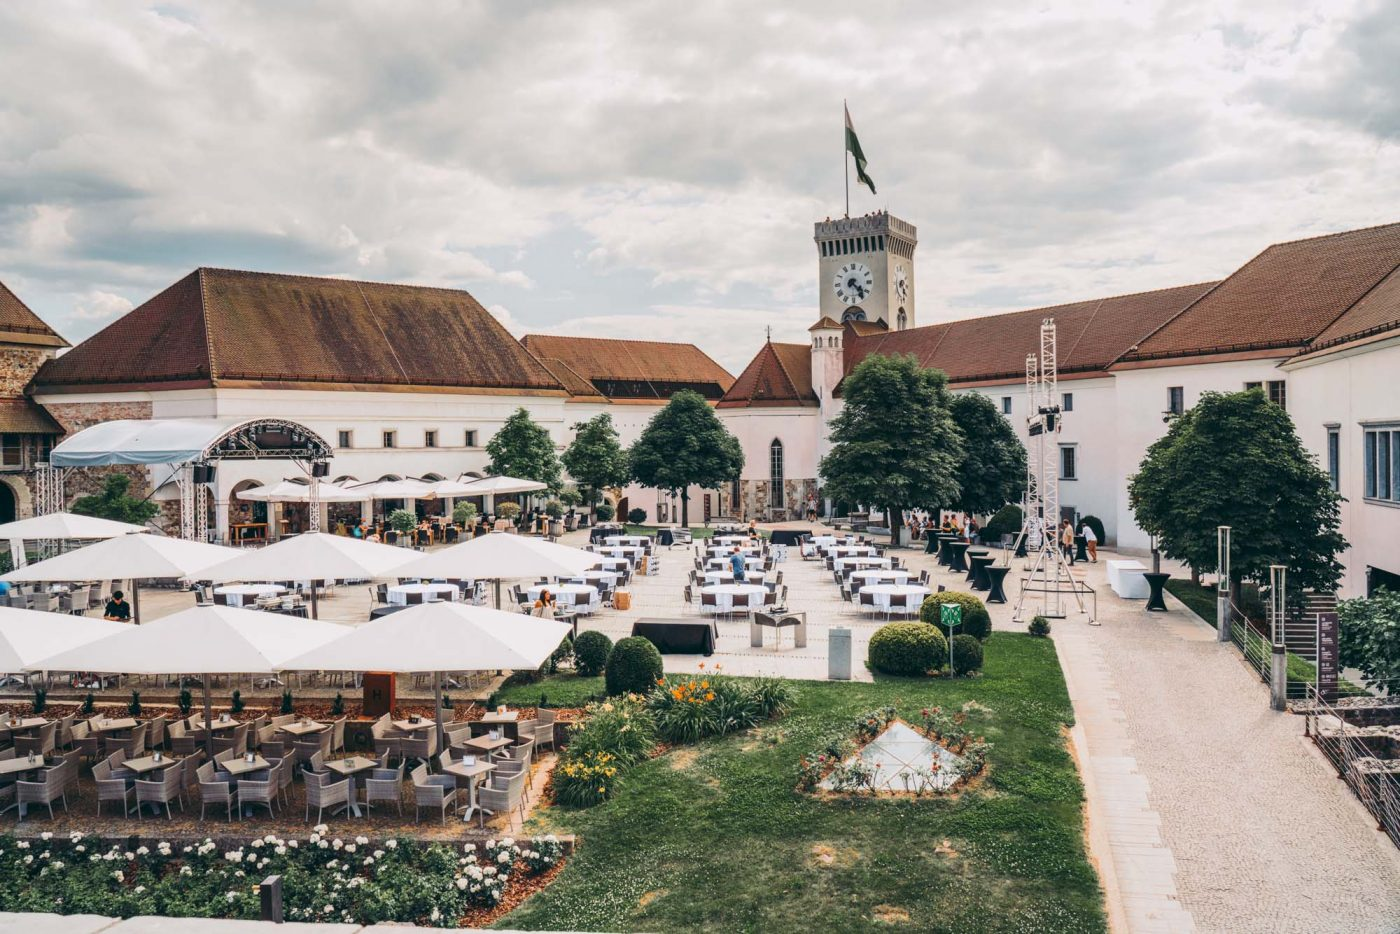 things to do in slovenia on holiday: Ljubljana Castle